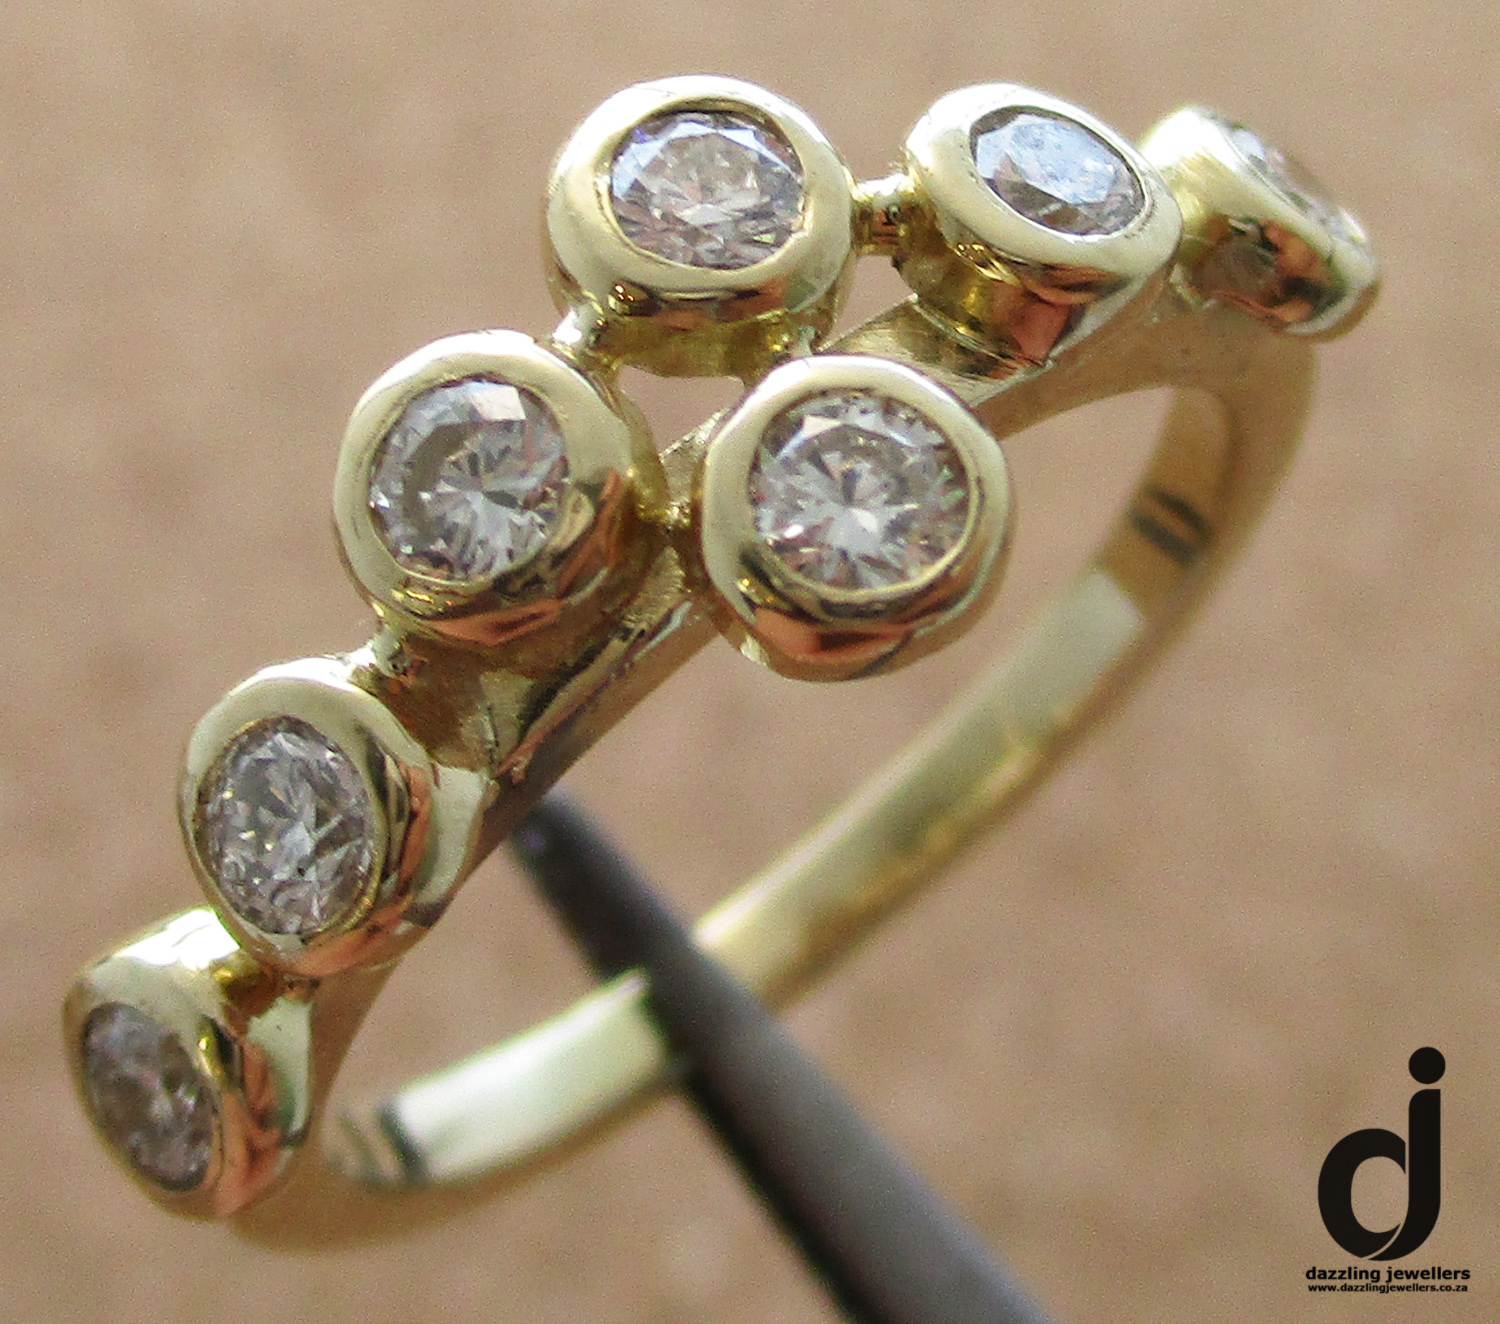 yellow gold and diamnd ring made by dazzling jewellers